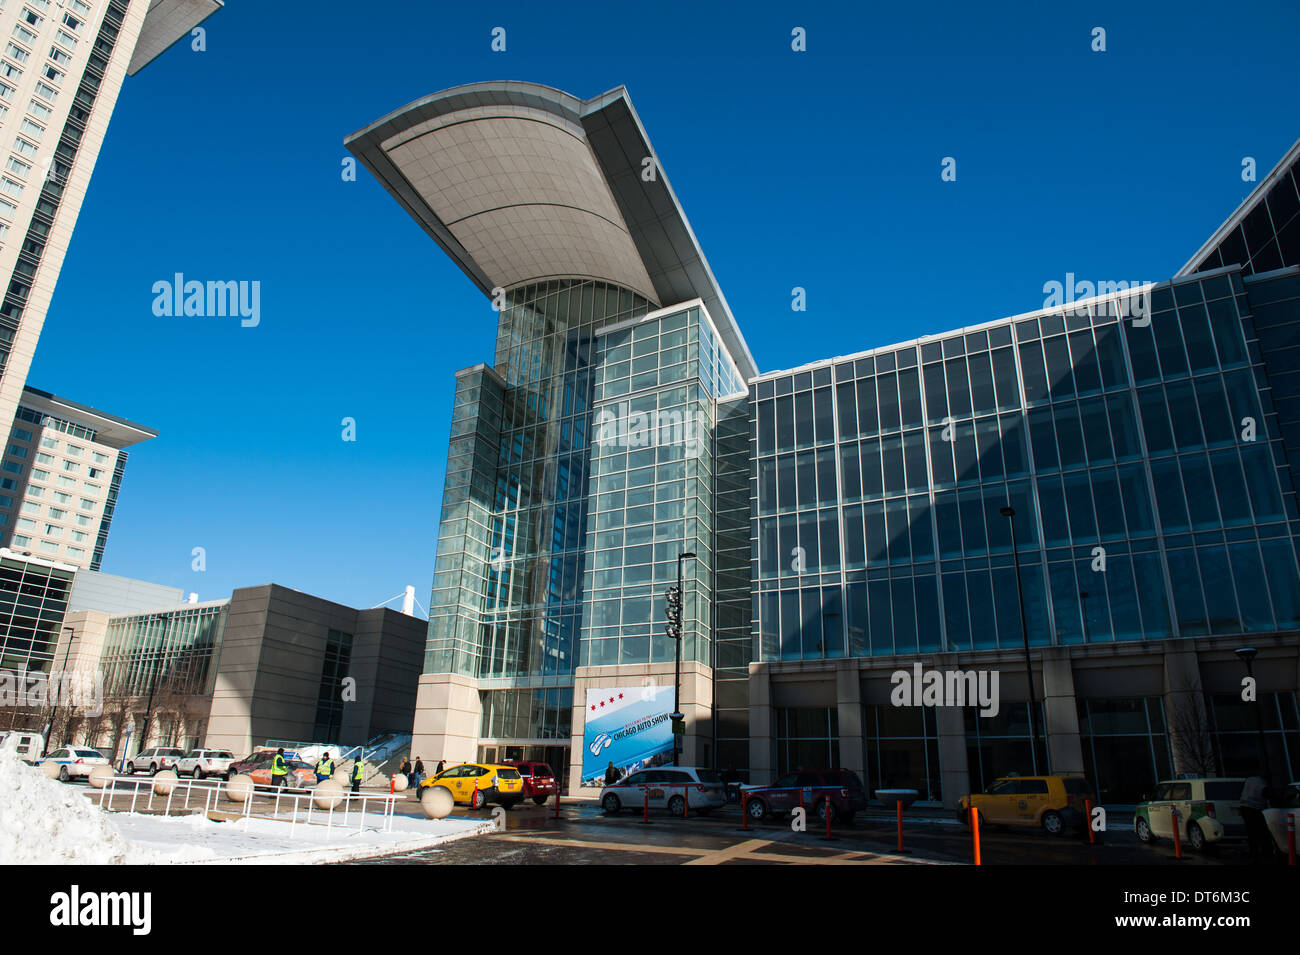 Exhibit Space Stock Photos & Exhibit Space Stock Images - Alamy